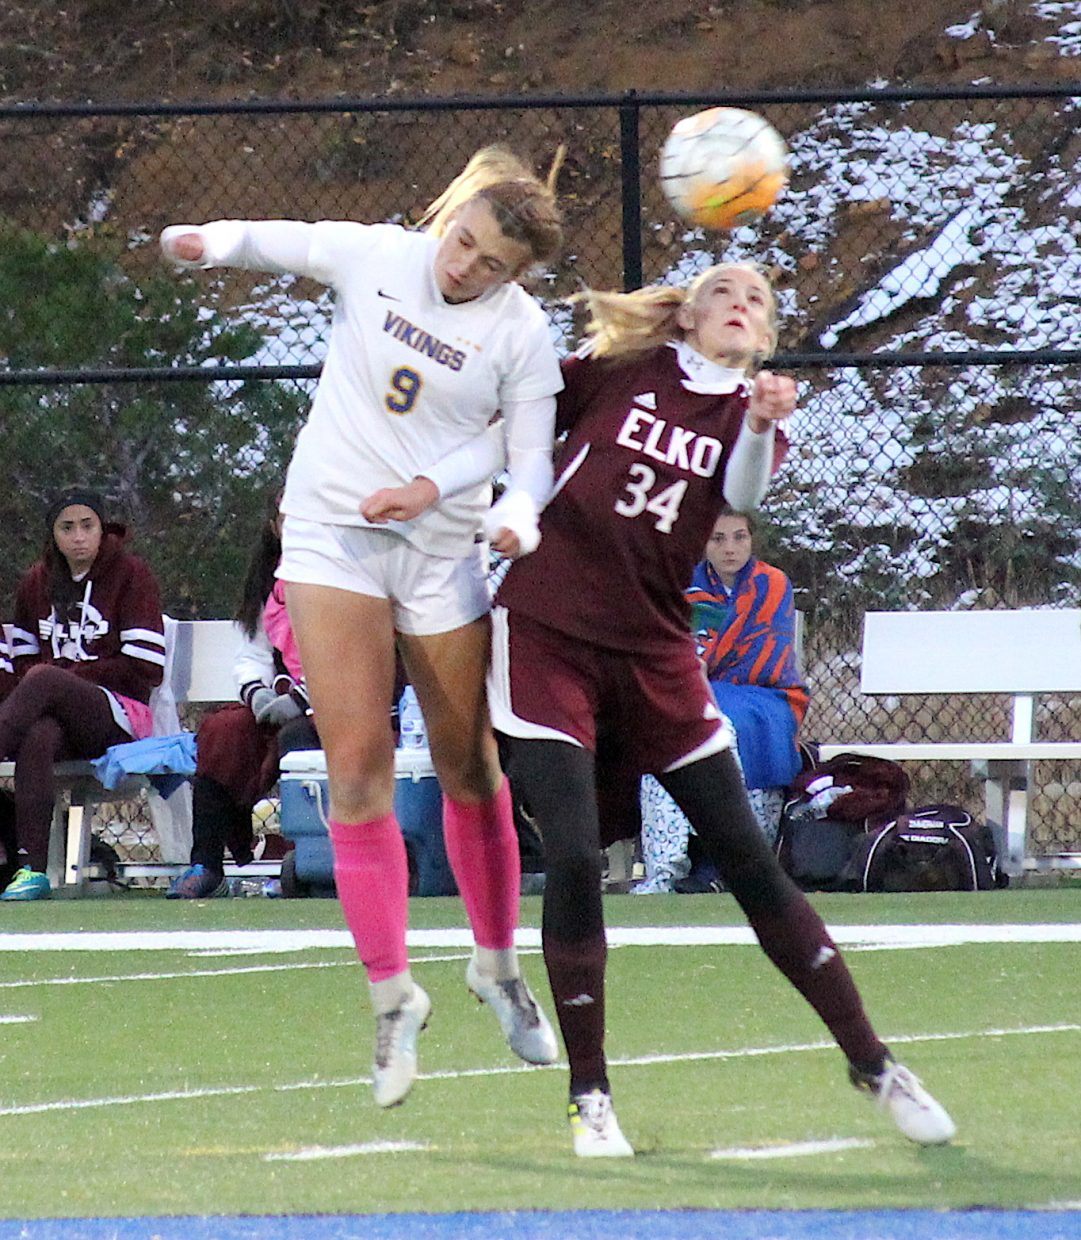 Vikings senior Samantha Frates heads the ball upfield Friday against Elko.